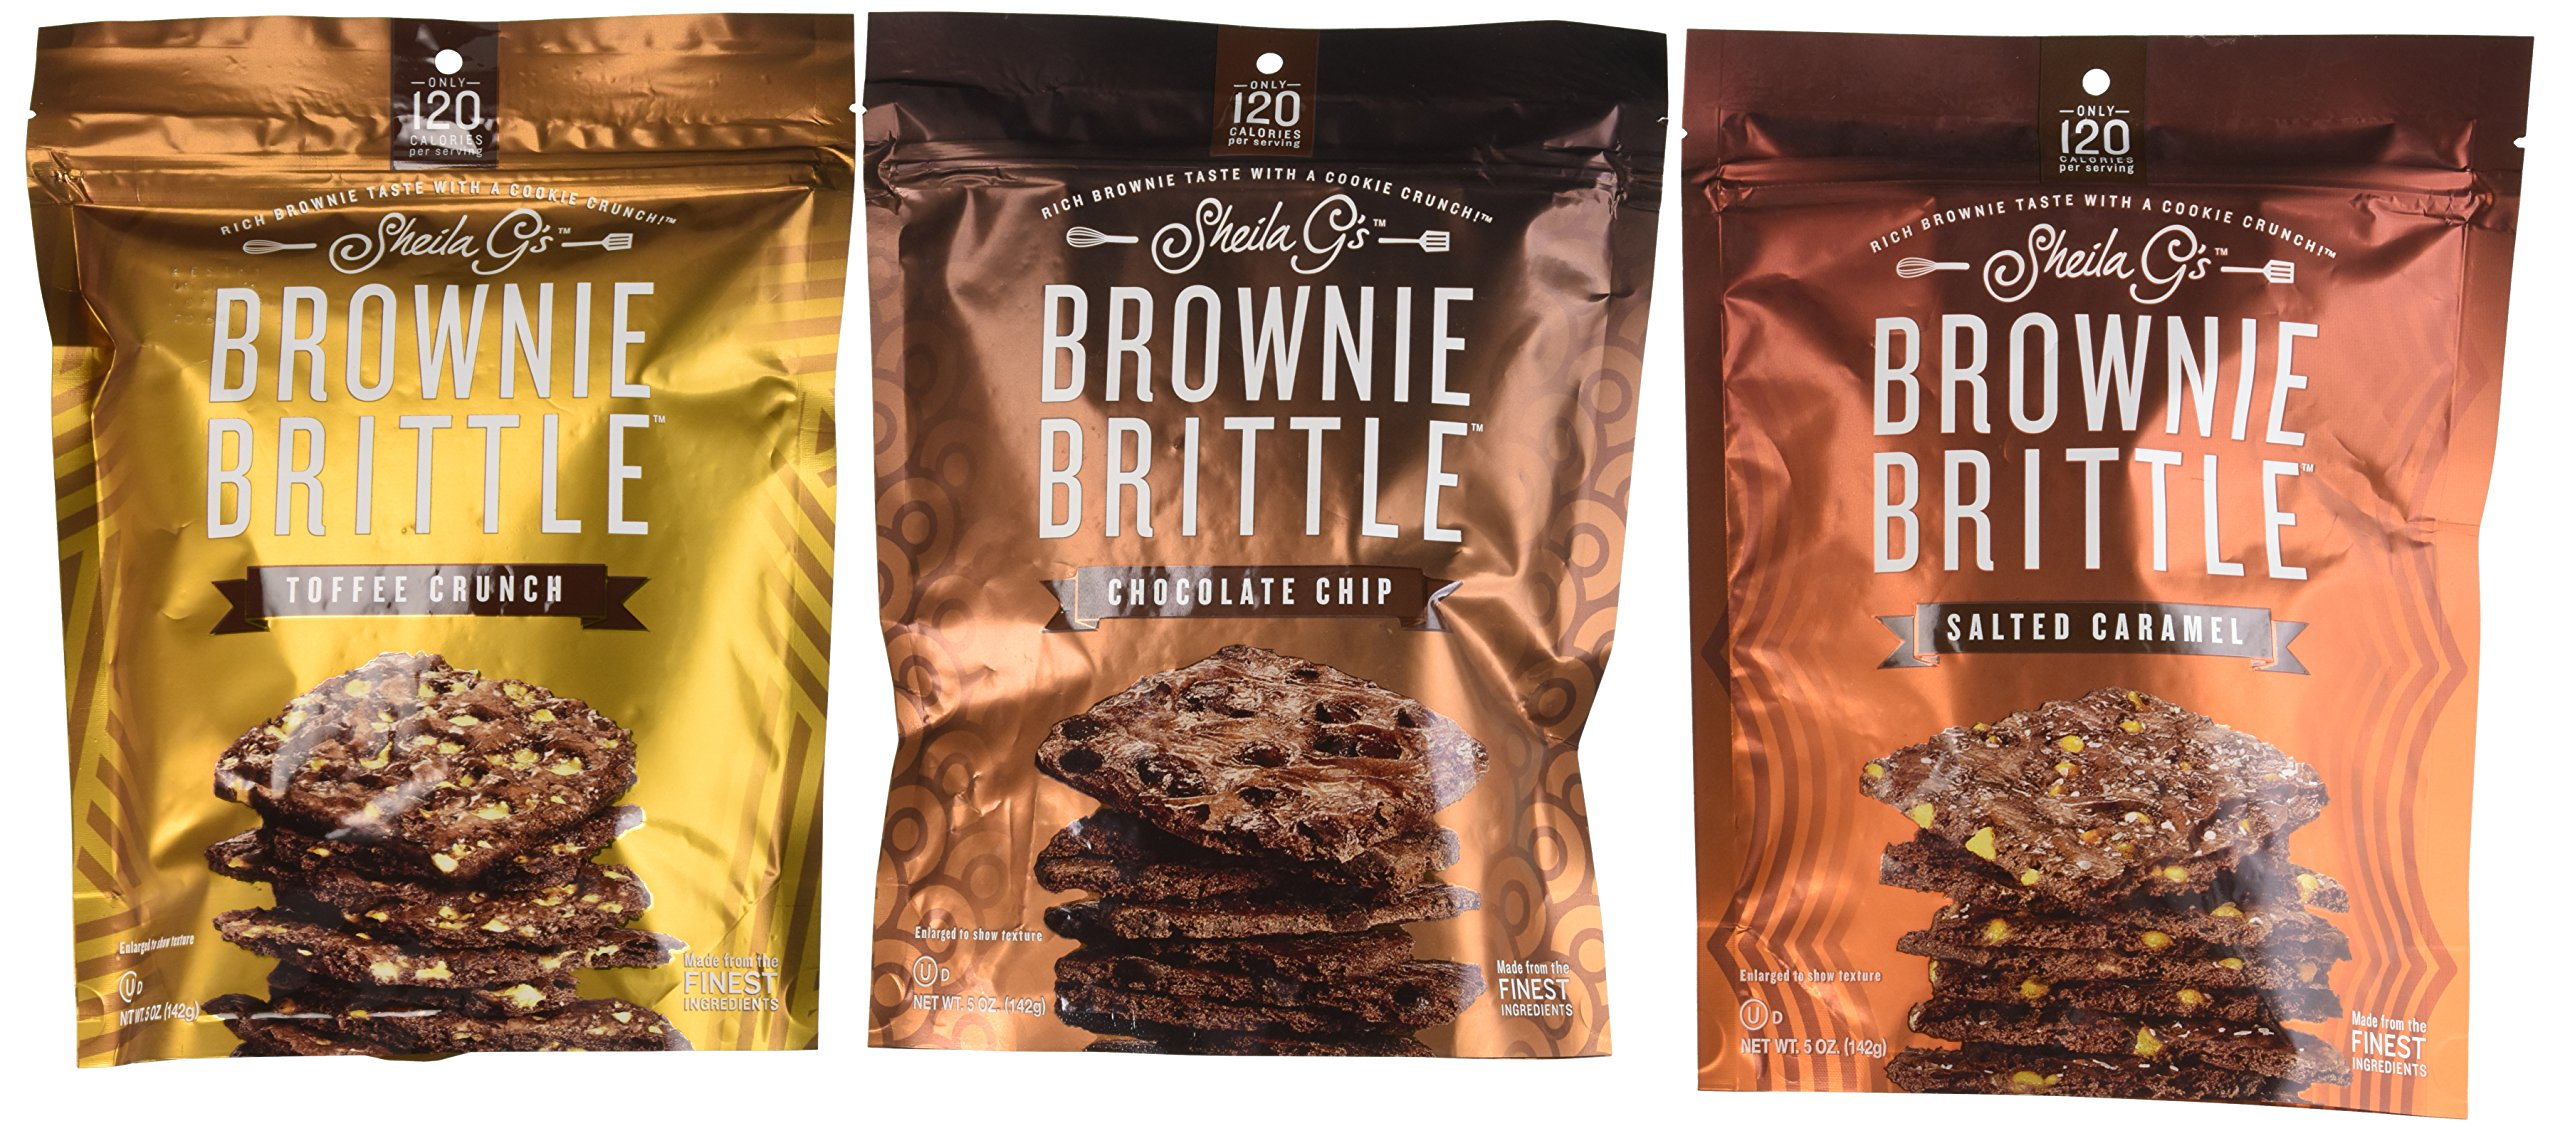 Sheila G's Brownie Brittle 3 Flavor Variety Bundle: (1) Sheila G's Salted Caramel Brownie Brittle, (1) Sheila G's Chocolate Chip Brownie Brittle, and (1) Sheila G's Toffee Crunch Brownie Brittle, 5 Oz. Ea. (3 Bags Total) by Sheila G's